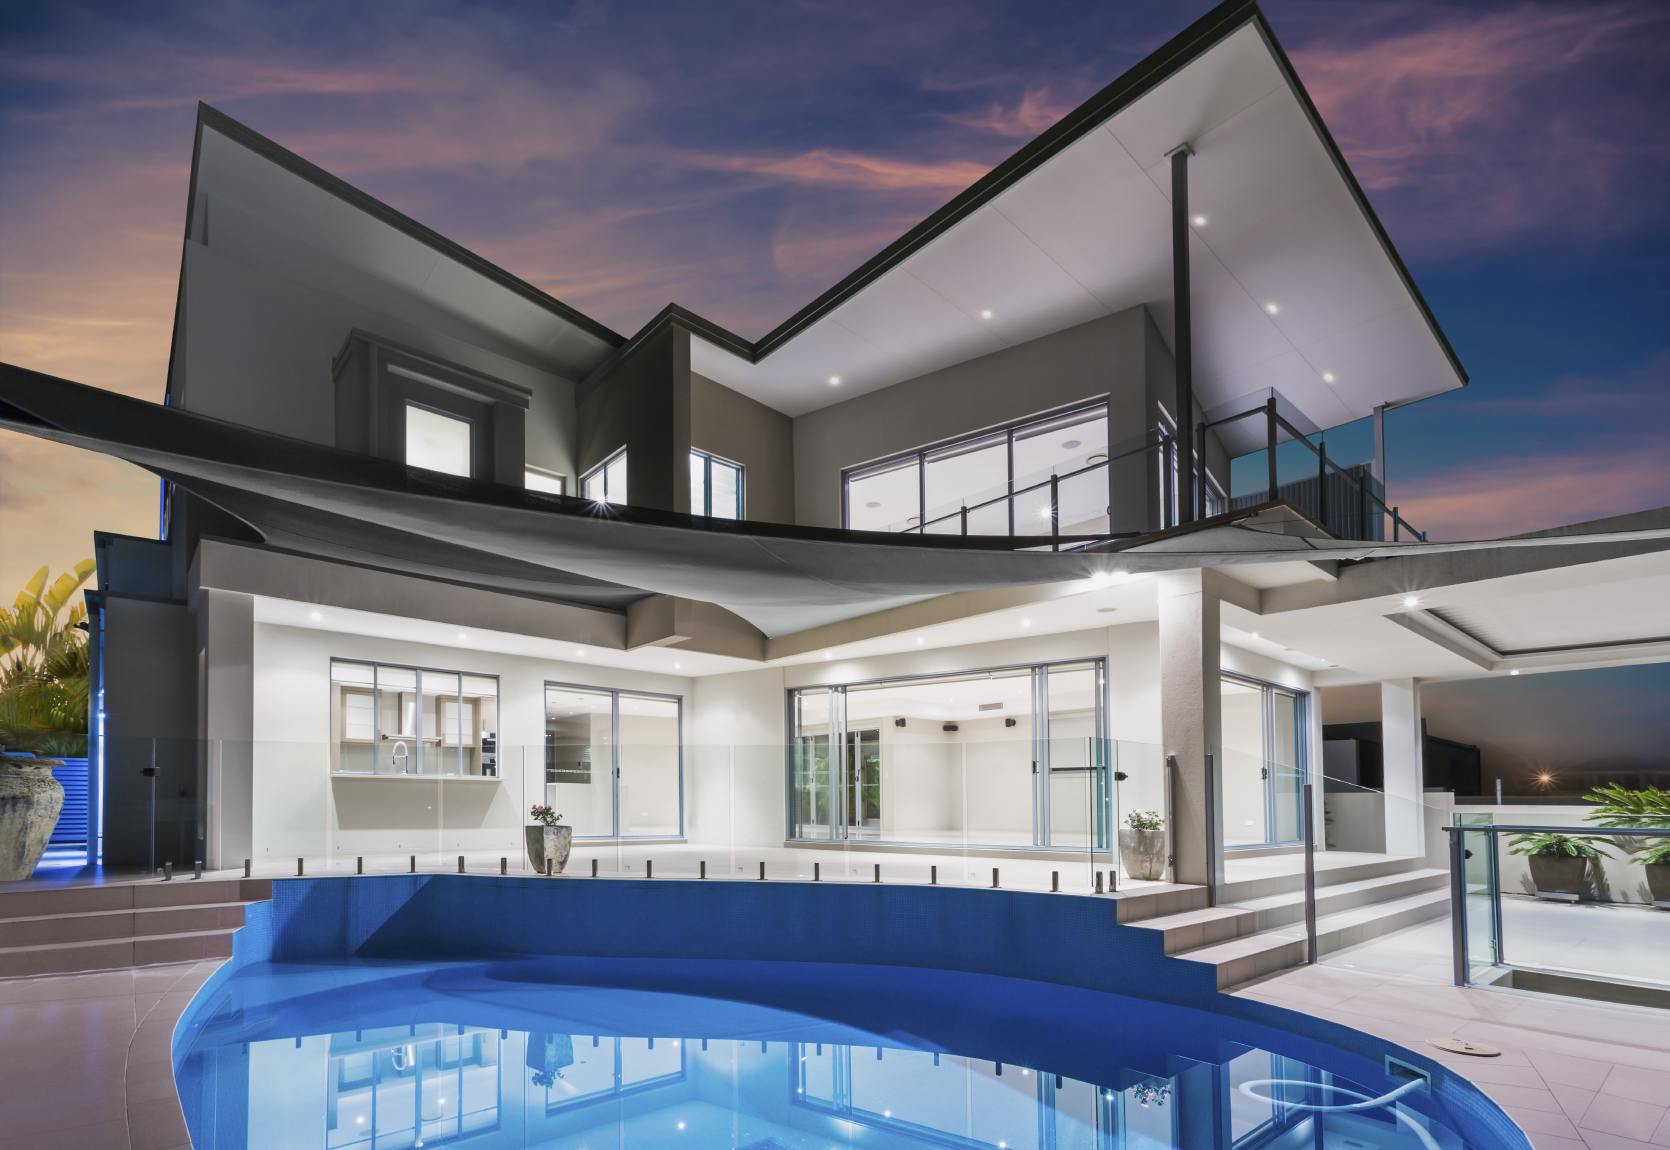 stock photo of a modern home